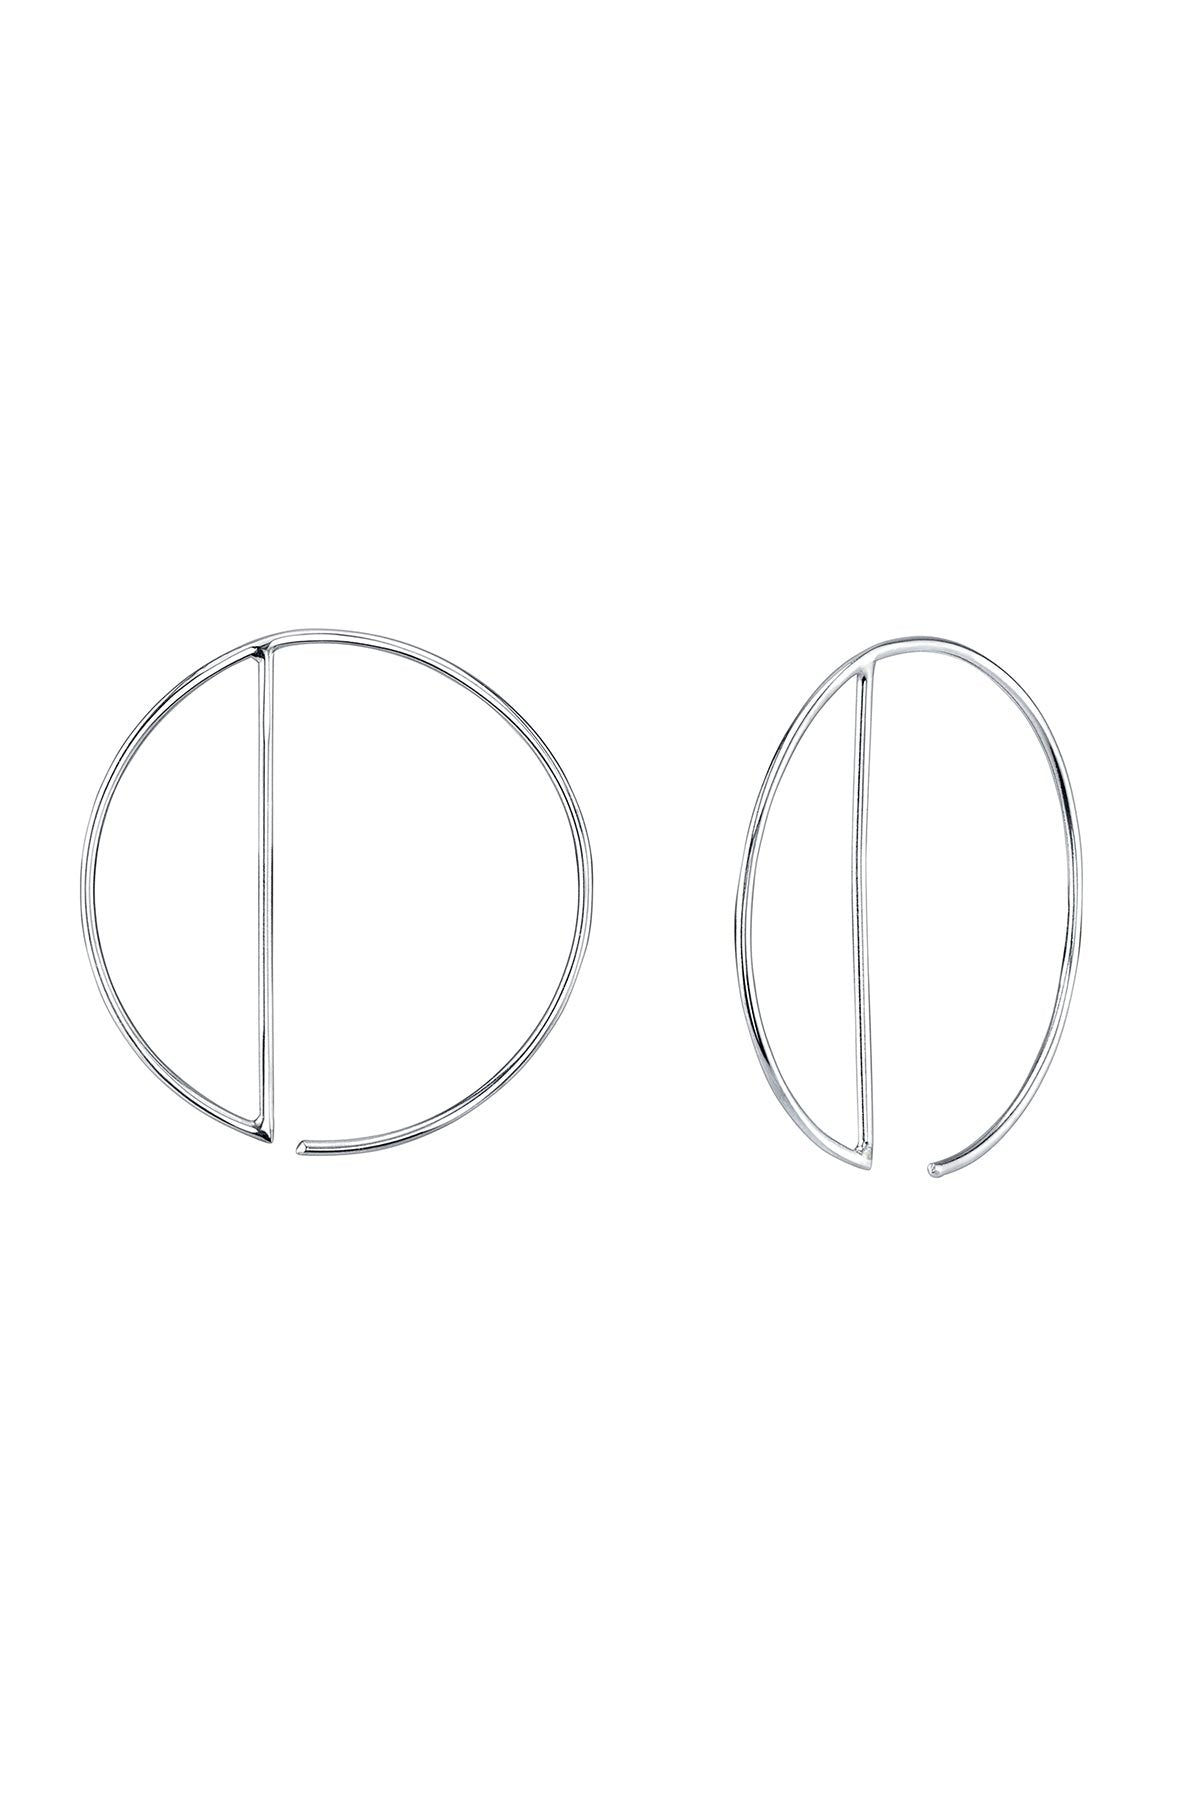 OPEN CRESCENT HOOPS IN SILVER BY SLOAN